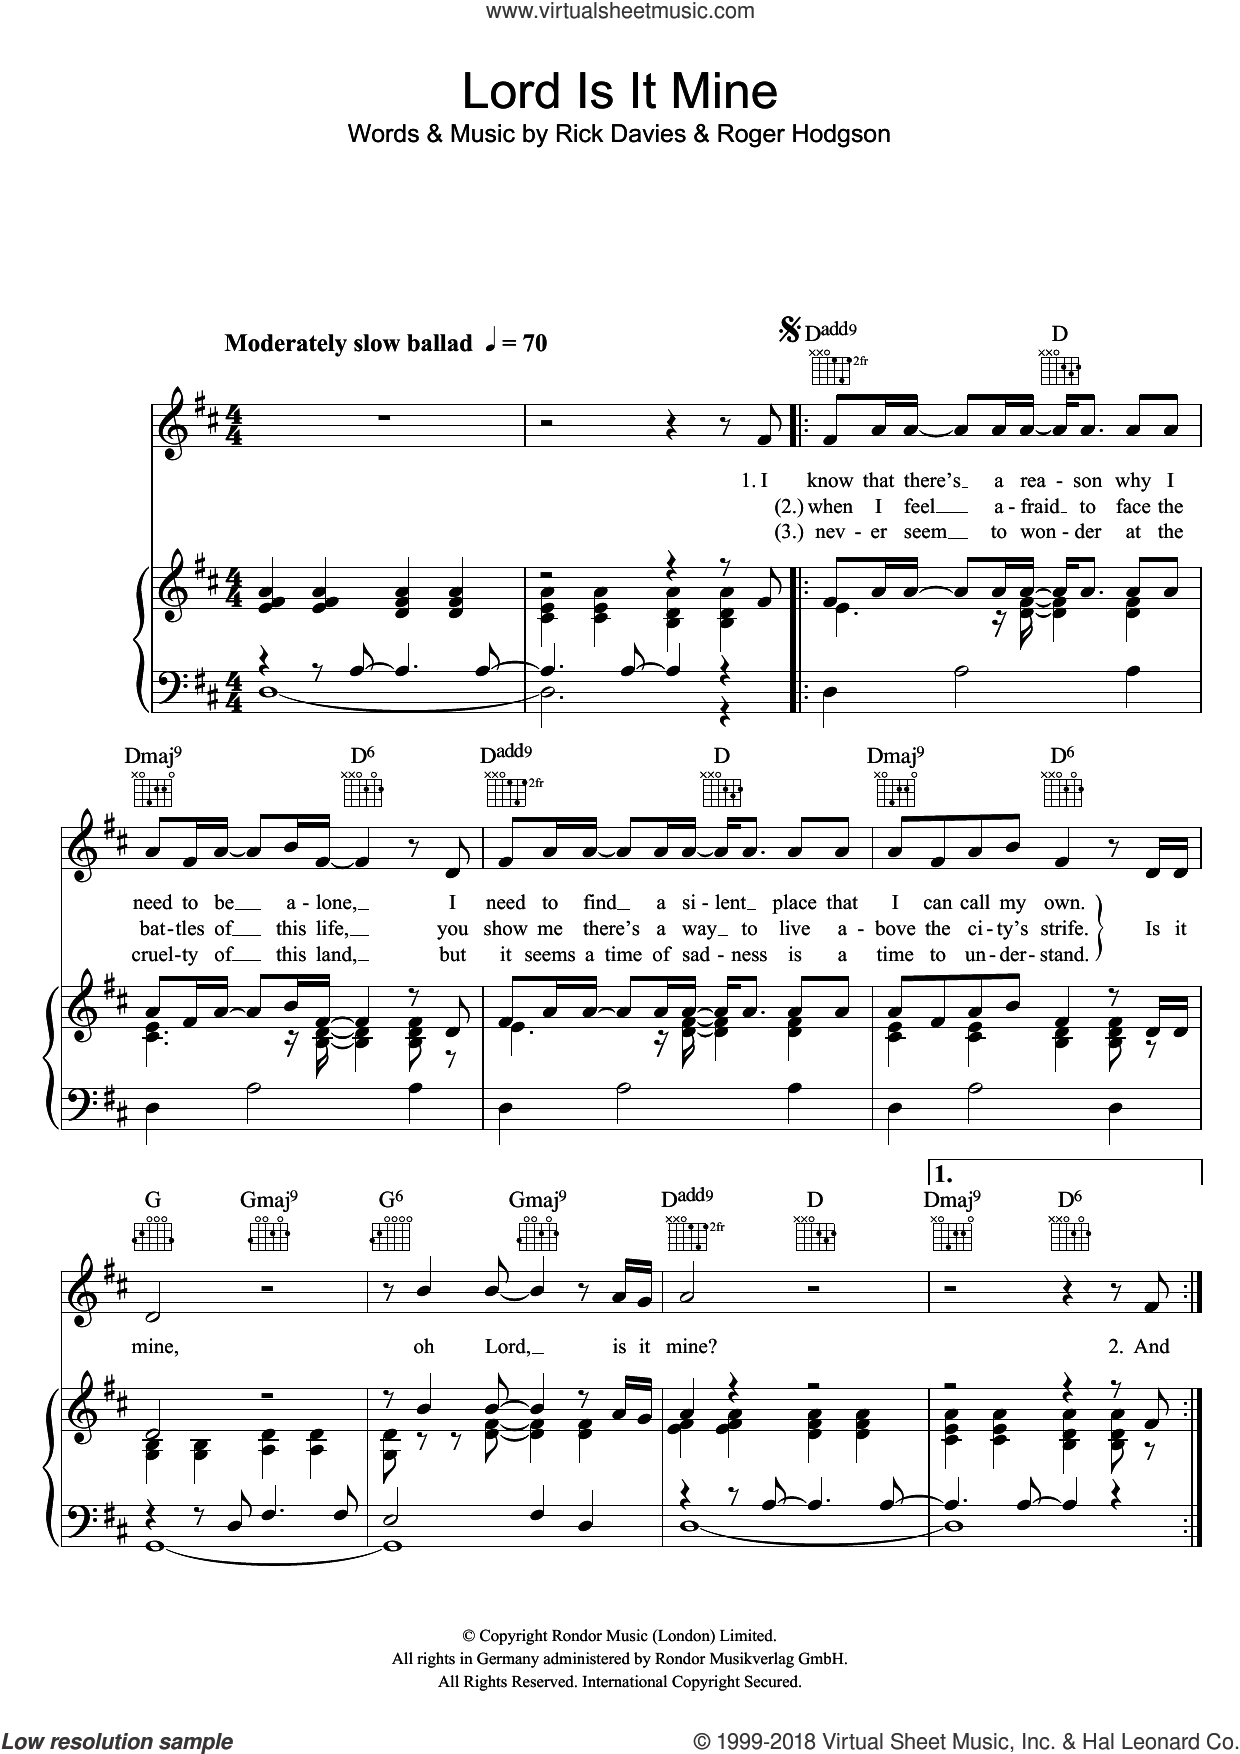 Lord Is It Mine sheet music for voice, piano or guitar by Supertramp, Rick Davies and Roger Hodgson, intermediate skill level